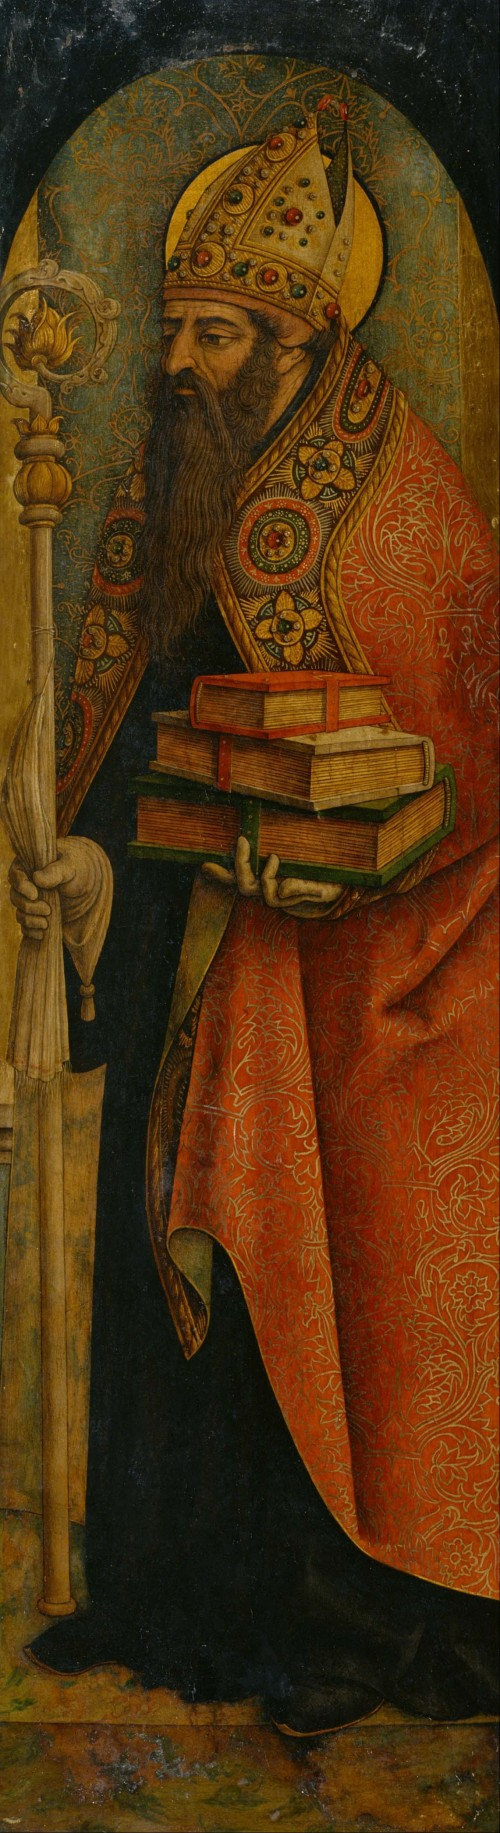 "Carlo Crivelli [Public domain], <a href=""https://commons.wikimedia.org/wiki/File:Carlo_Crivelli_-_St._Augustine_-_Google_Art_Project.jpg""  target=""_blank"">via Wikimedia Commons</a>"